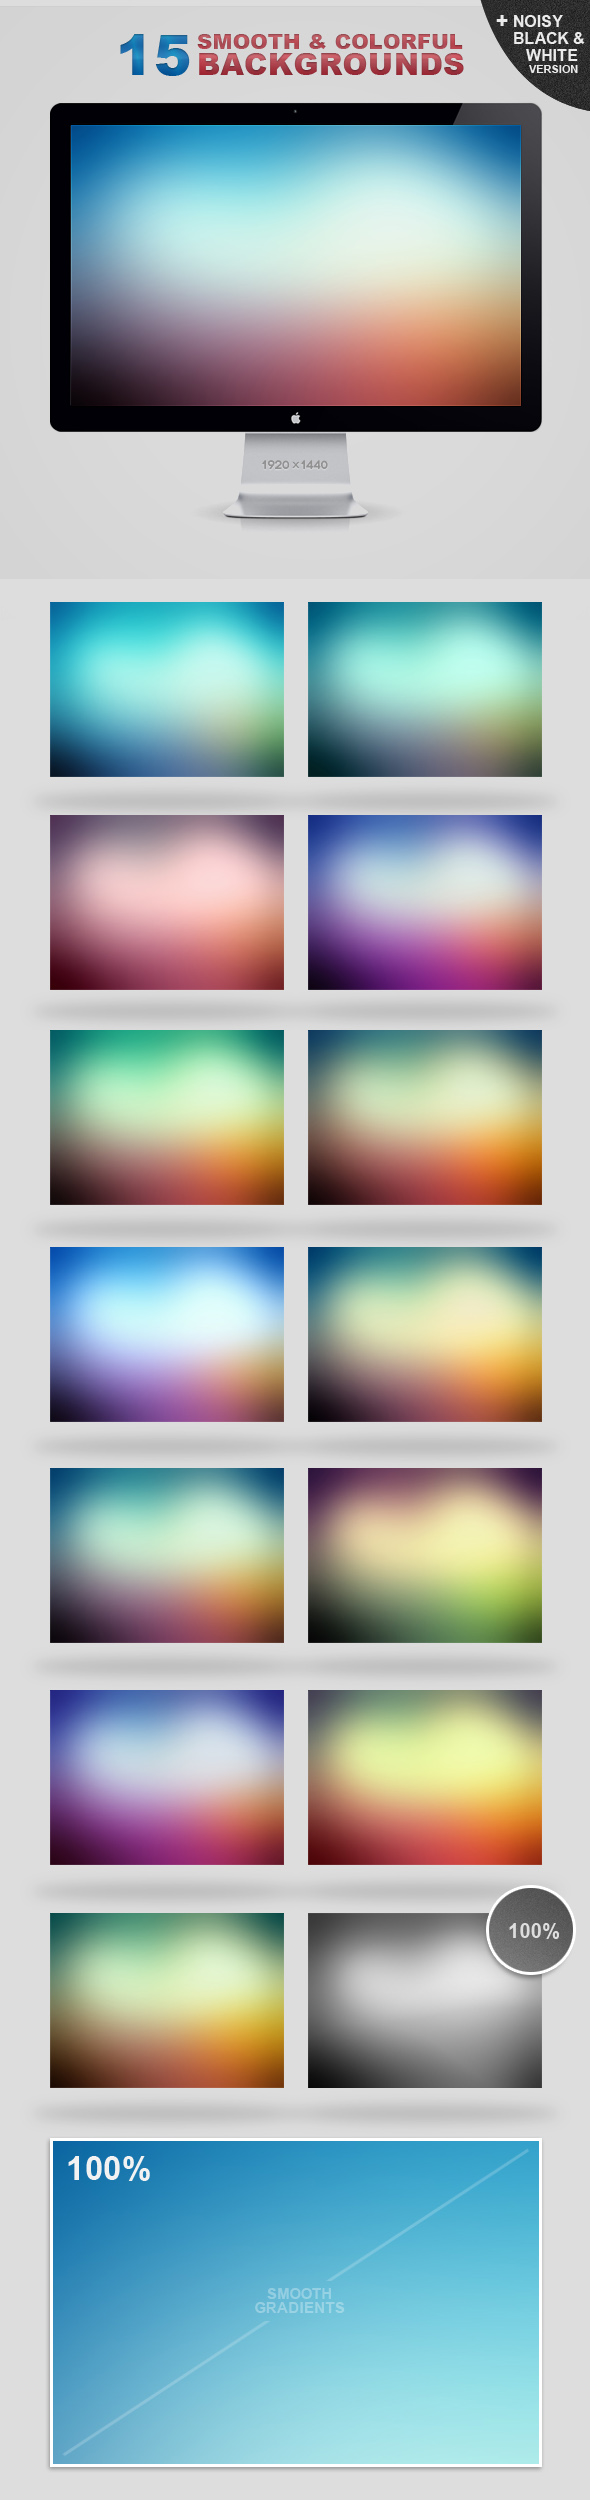 15 Soft Backgrounds